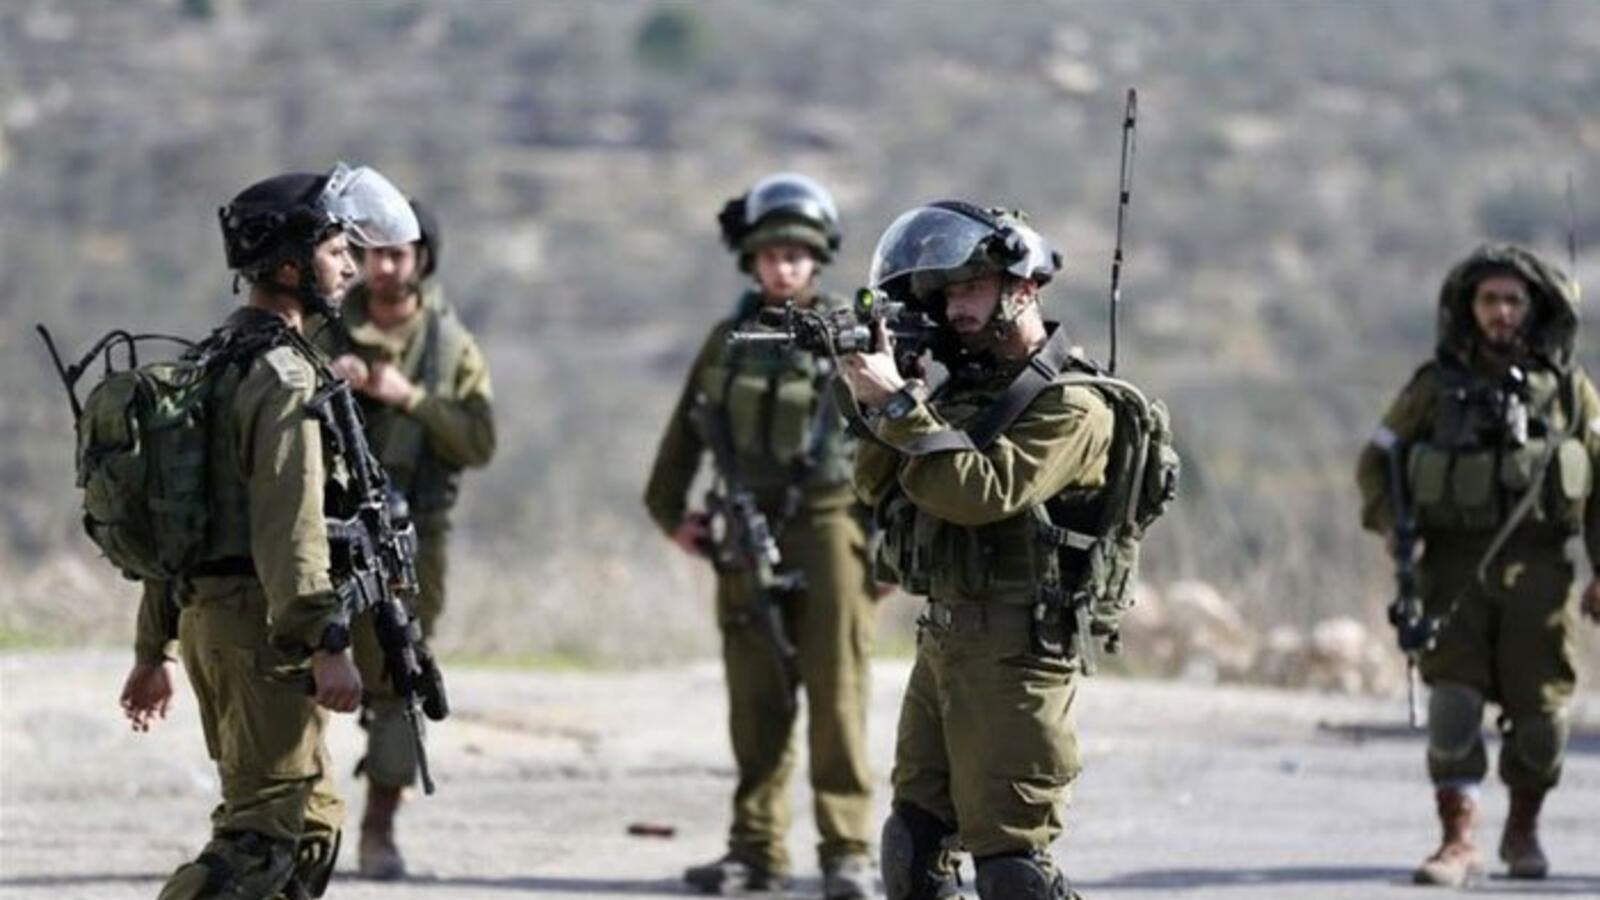 Israeli troops arrest on Palestinian trying to cross into Israel (AFP/File Photo)